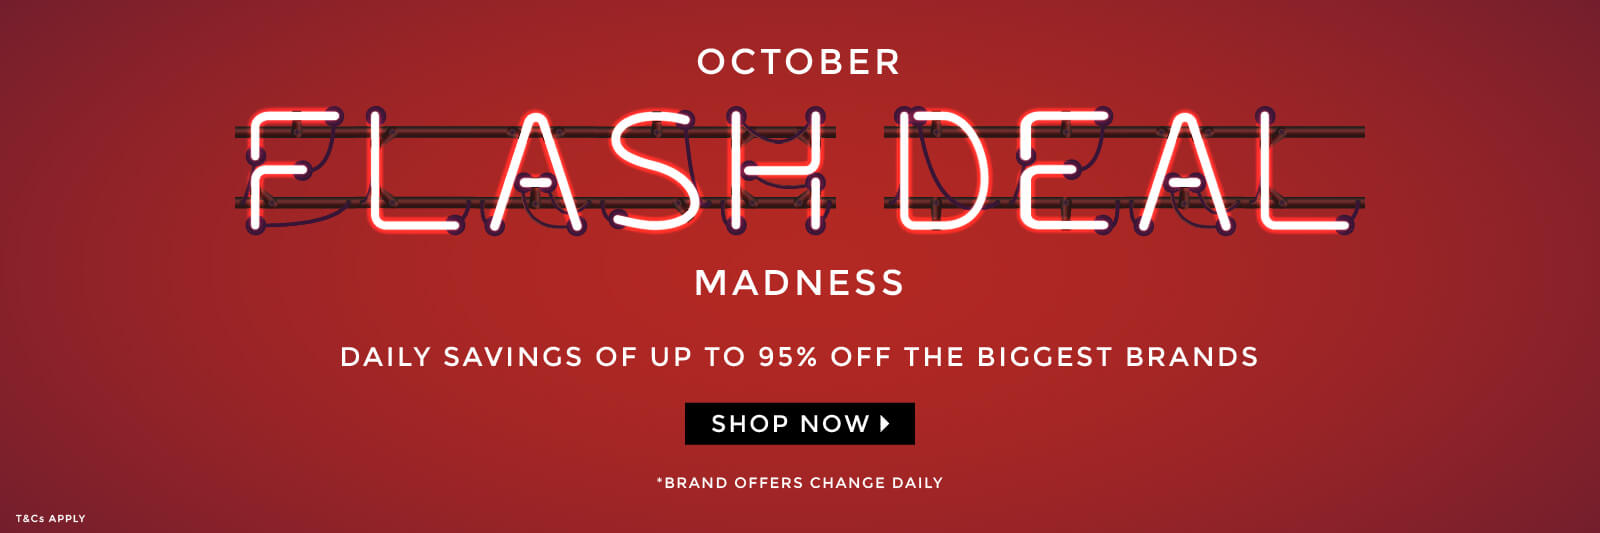 October Flash Deal Madness